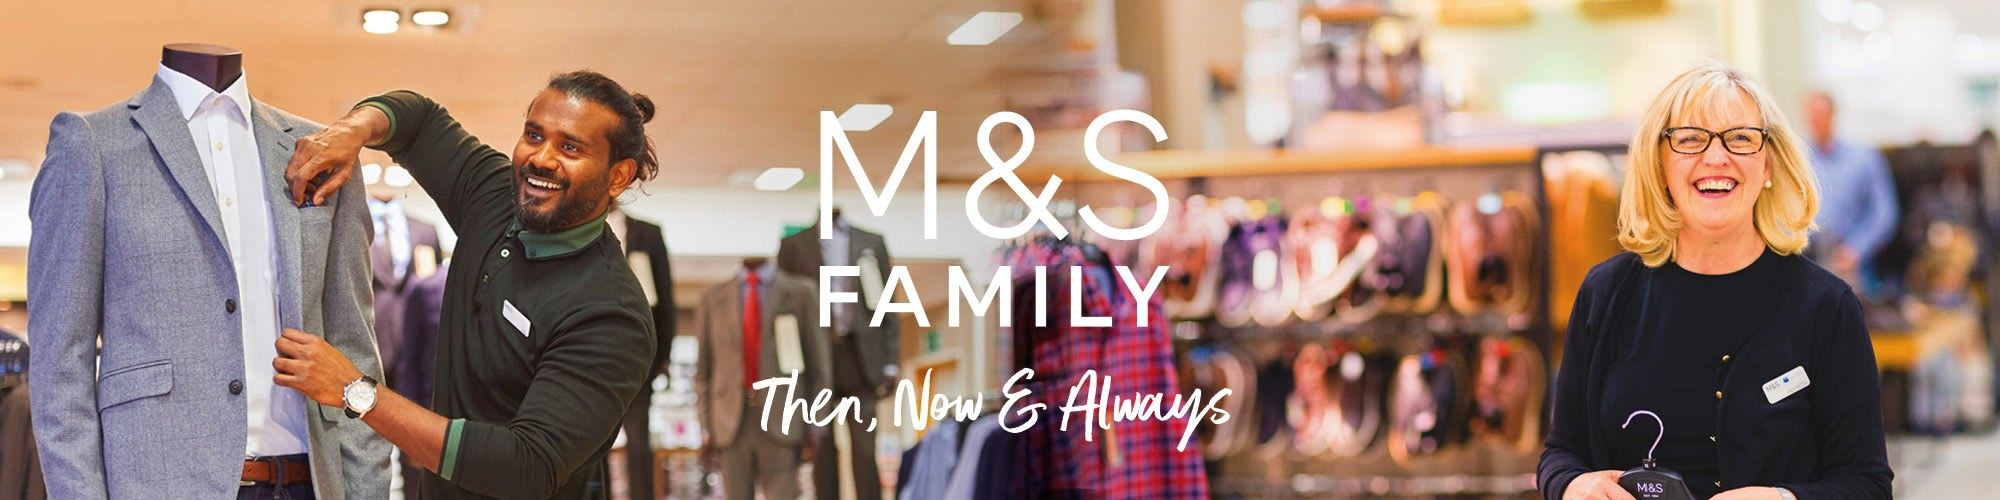 M&S Alumni Network